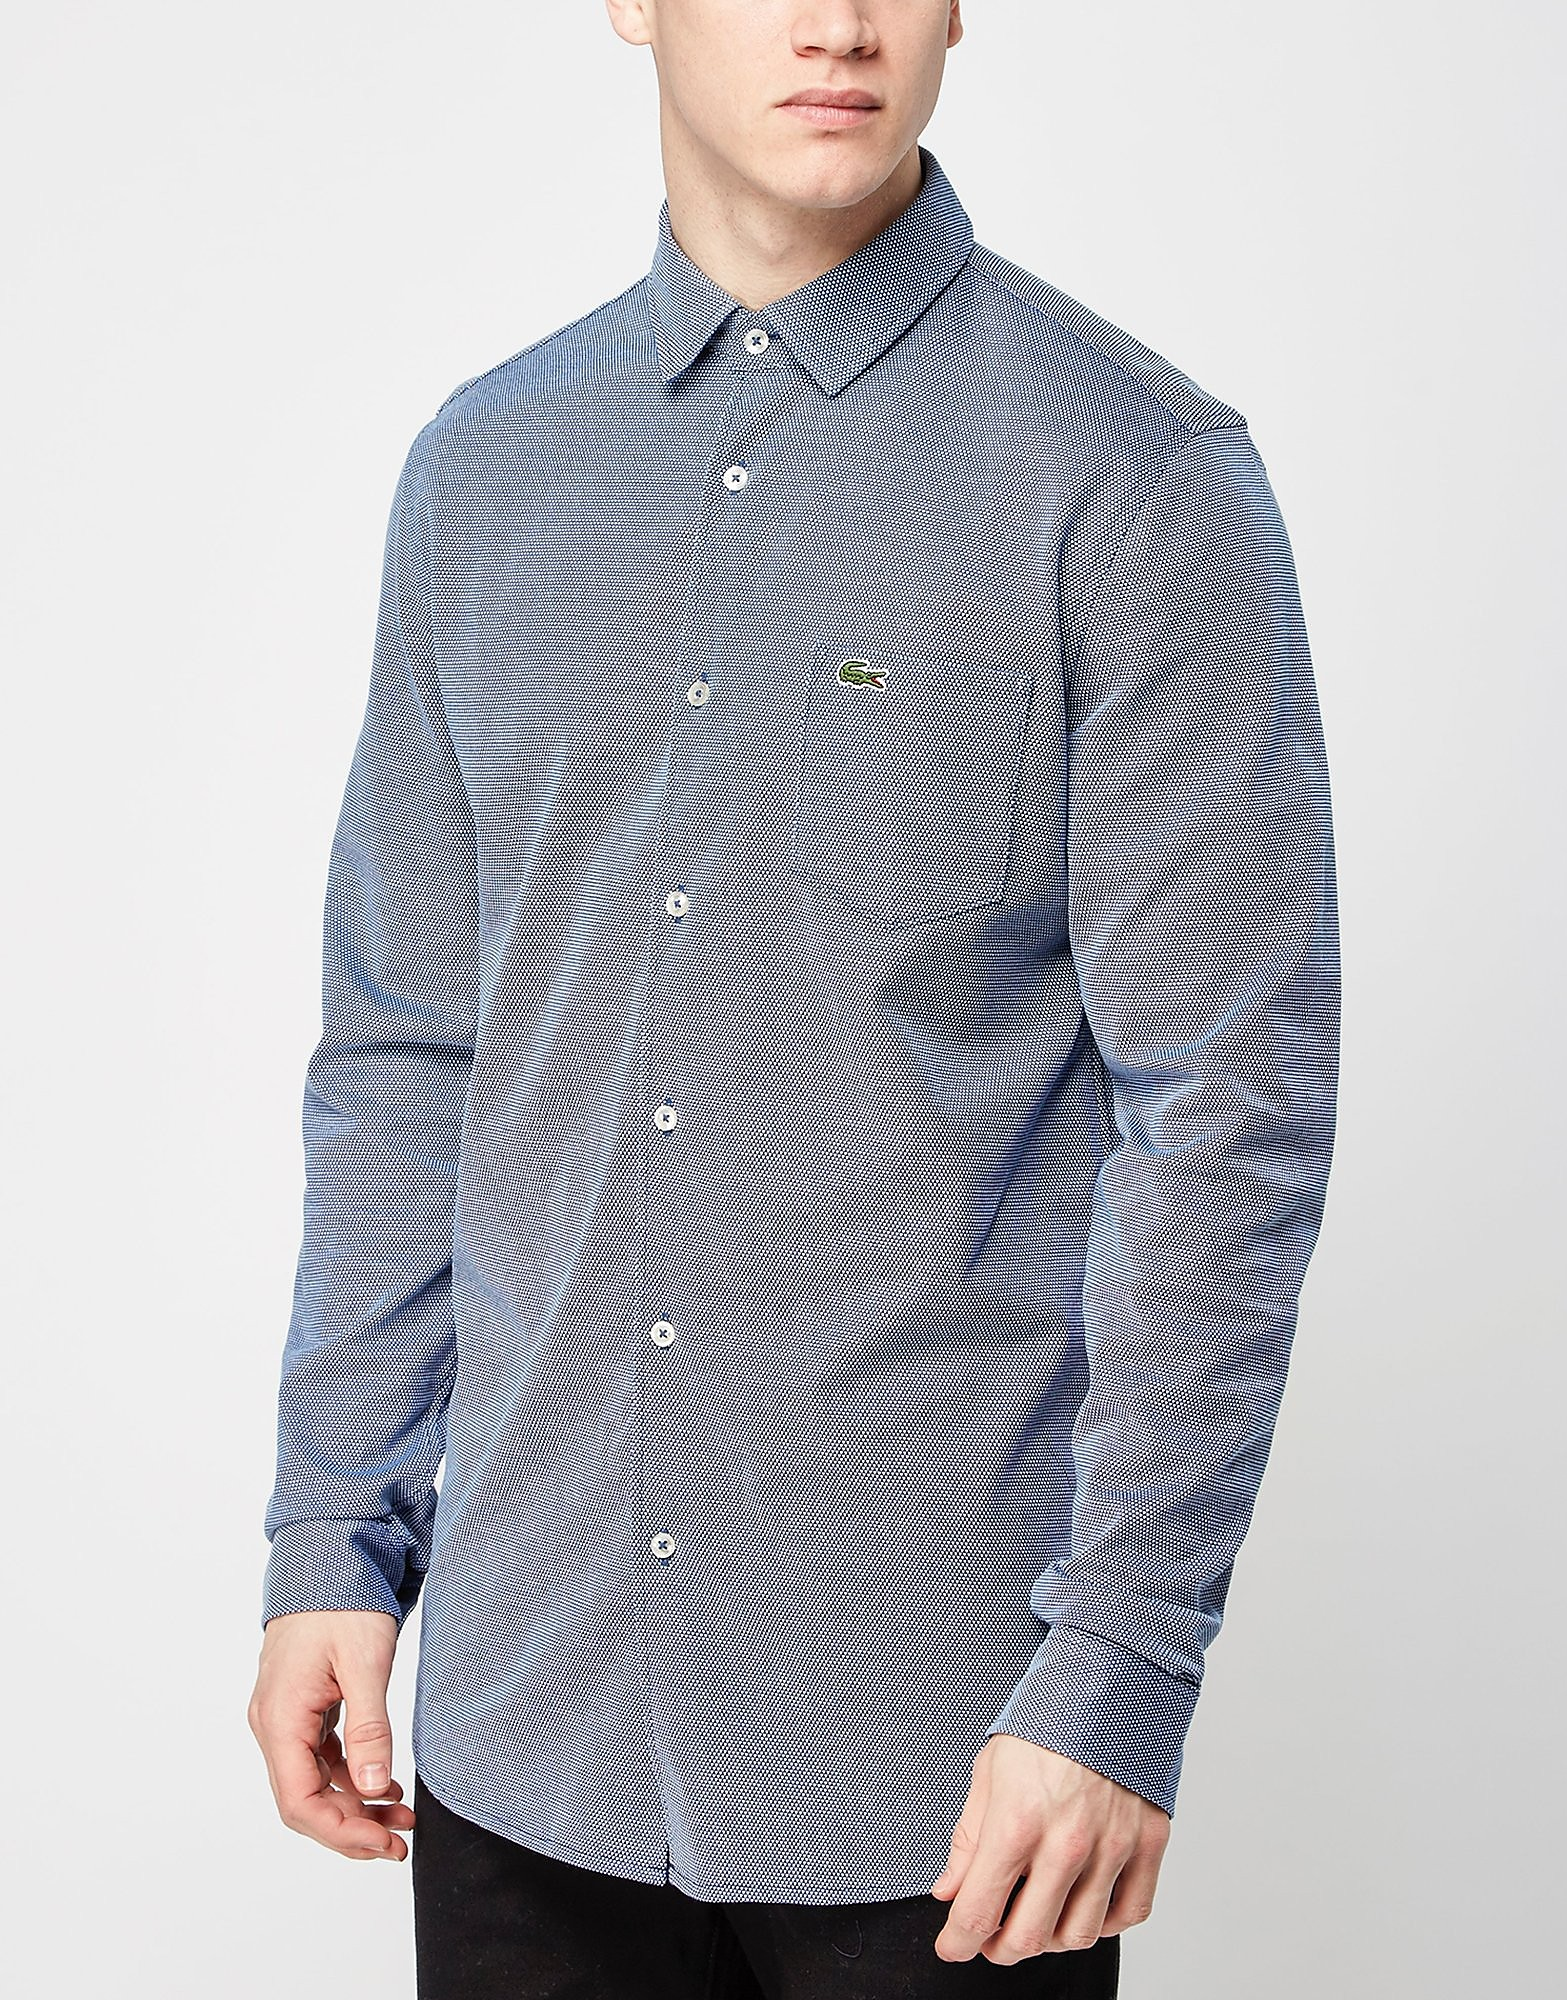 Lacoste Pique Patterned Long Sleeve Shirt